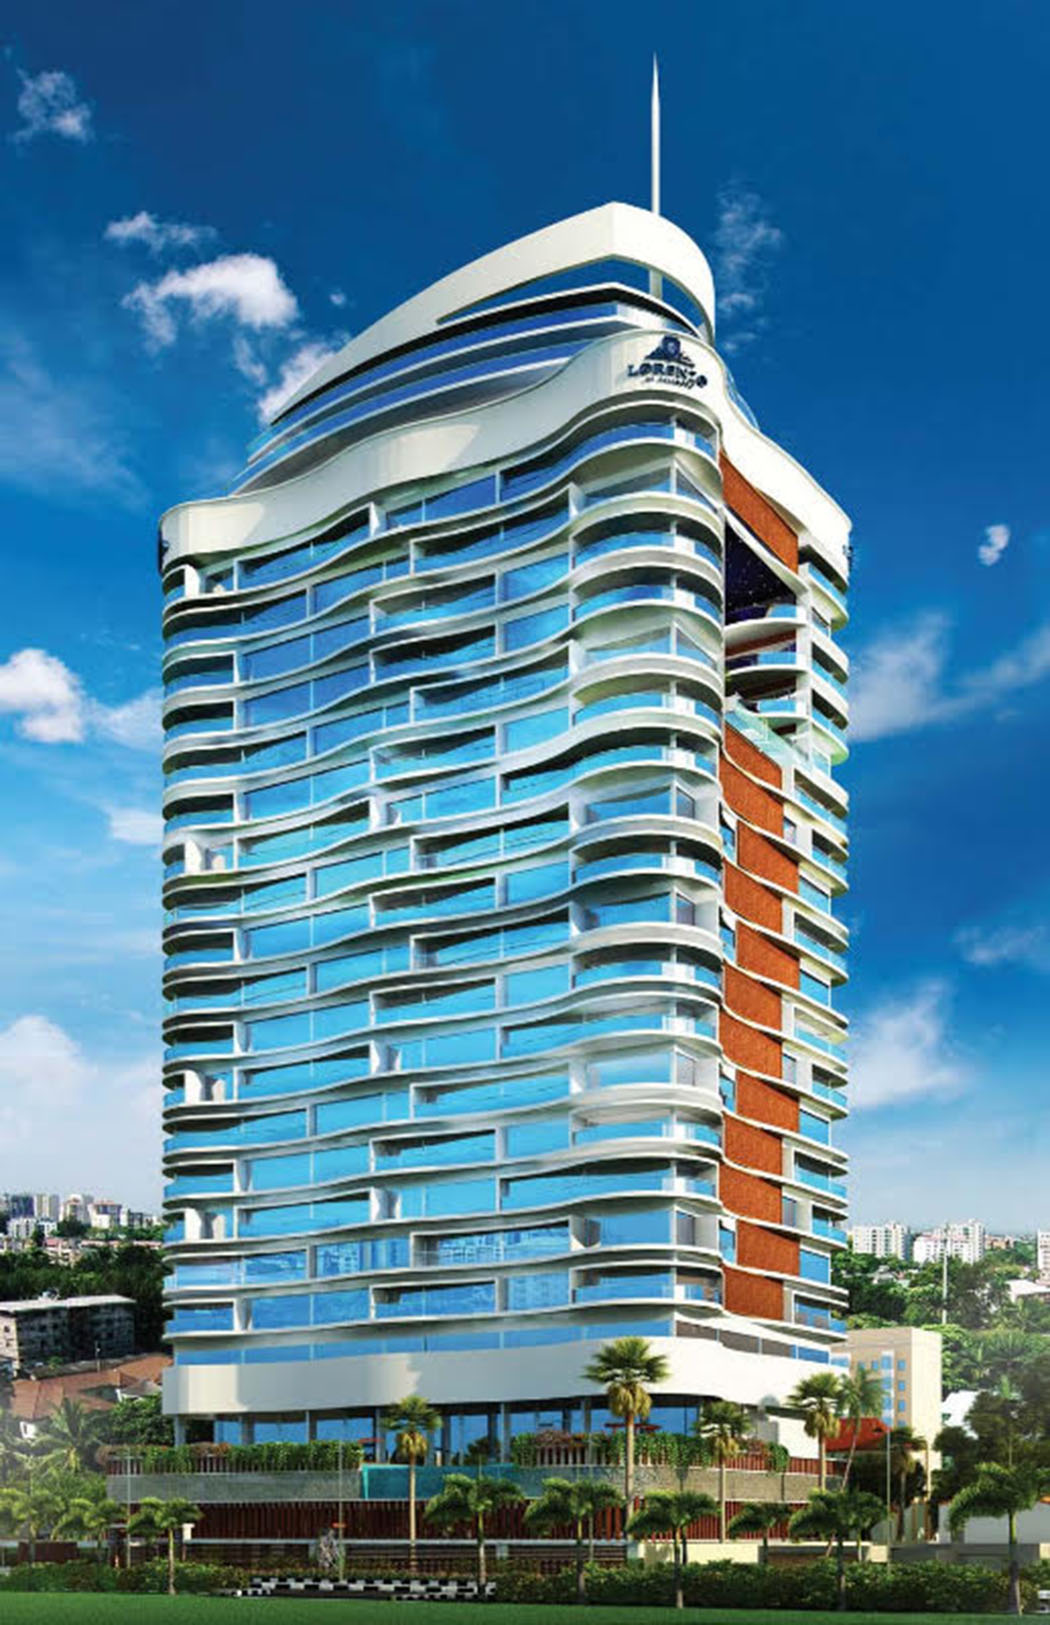 Lorenzo – Super ultra luxurious million dollar Ikoyi apartments by Sujimoto